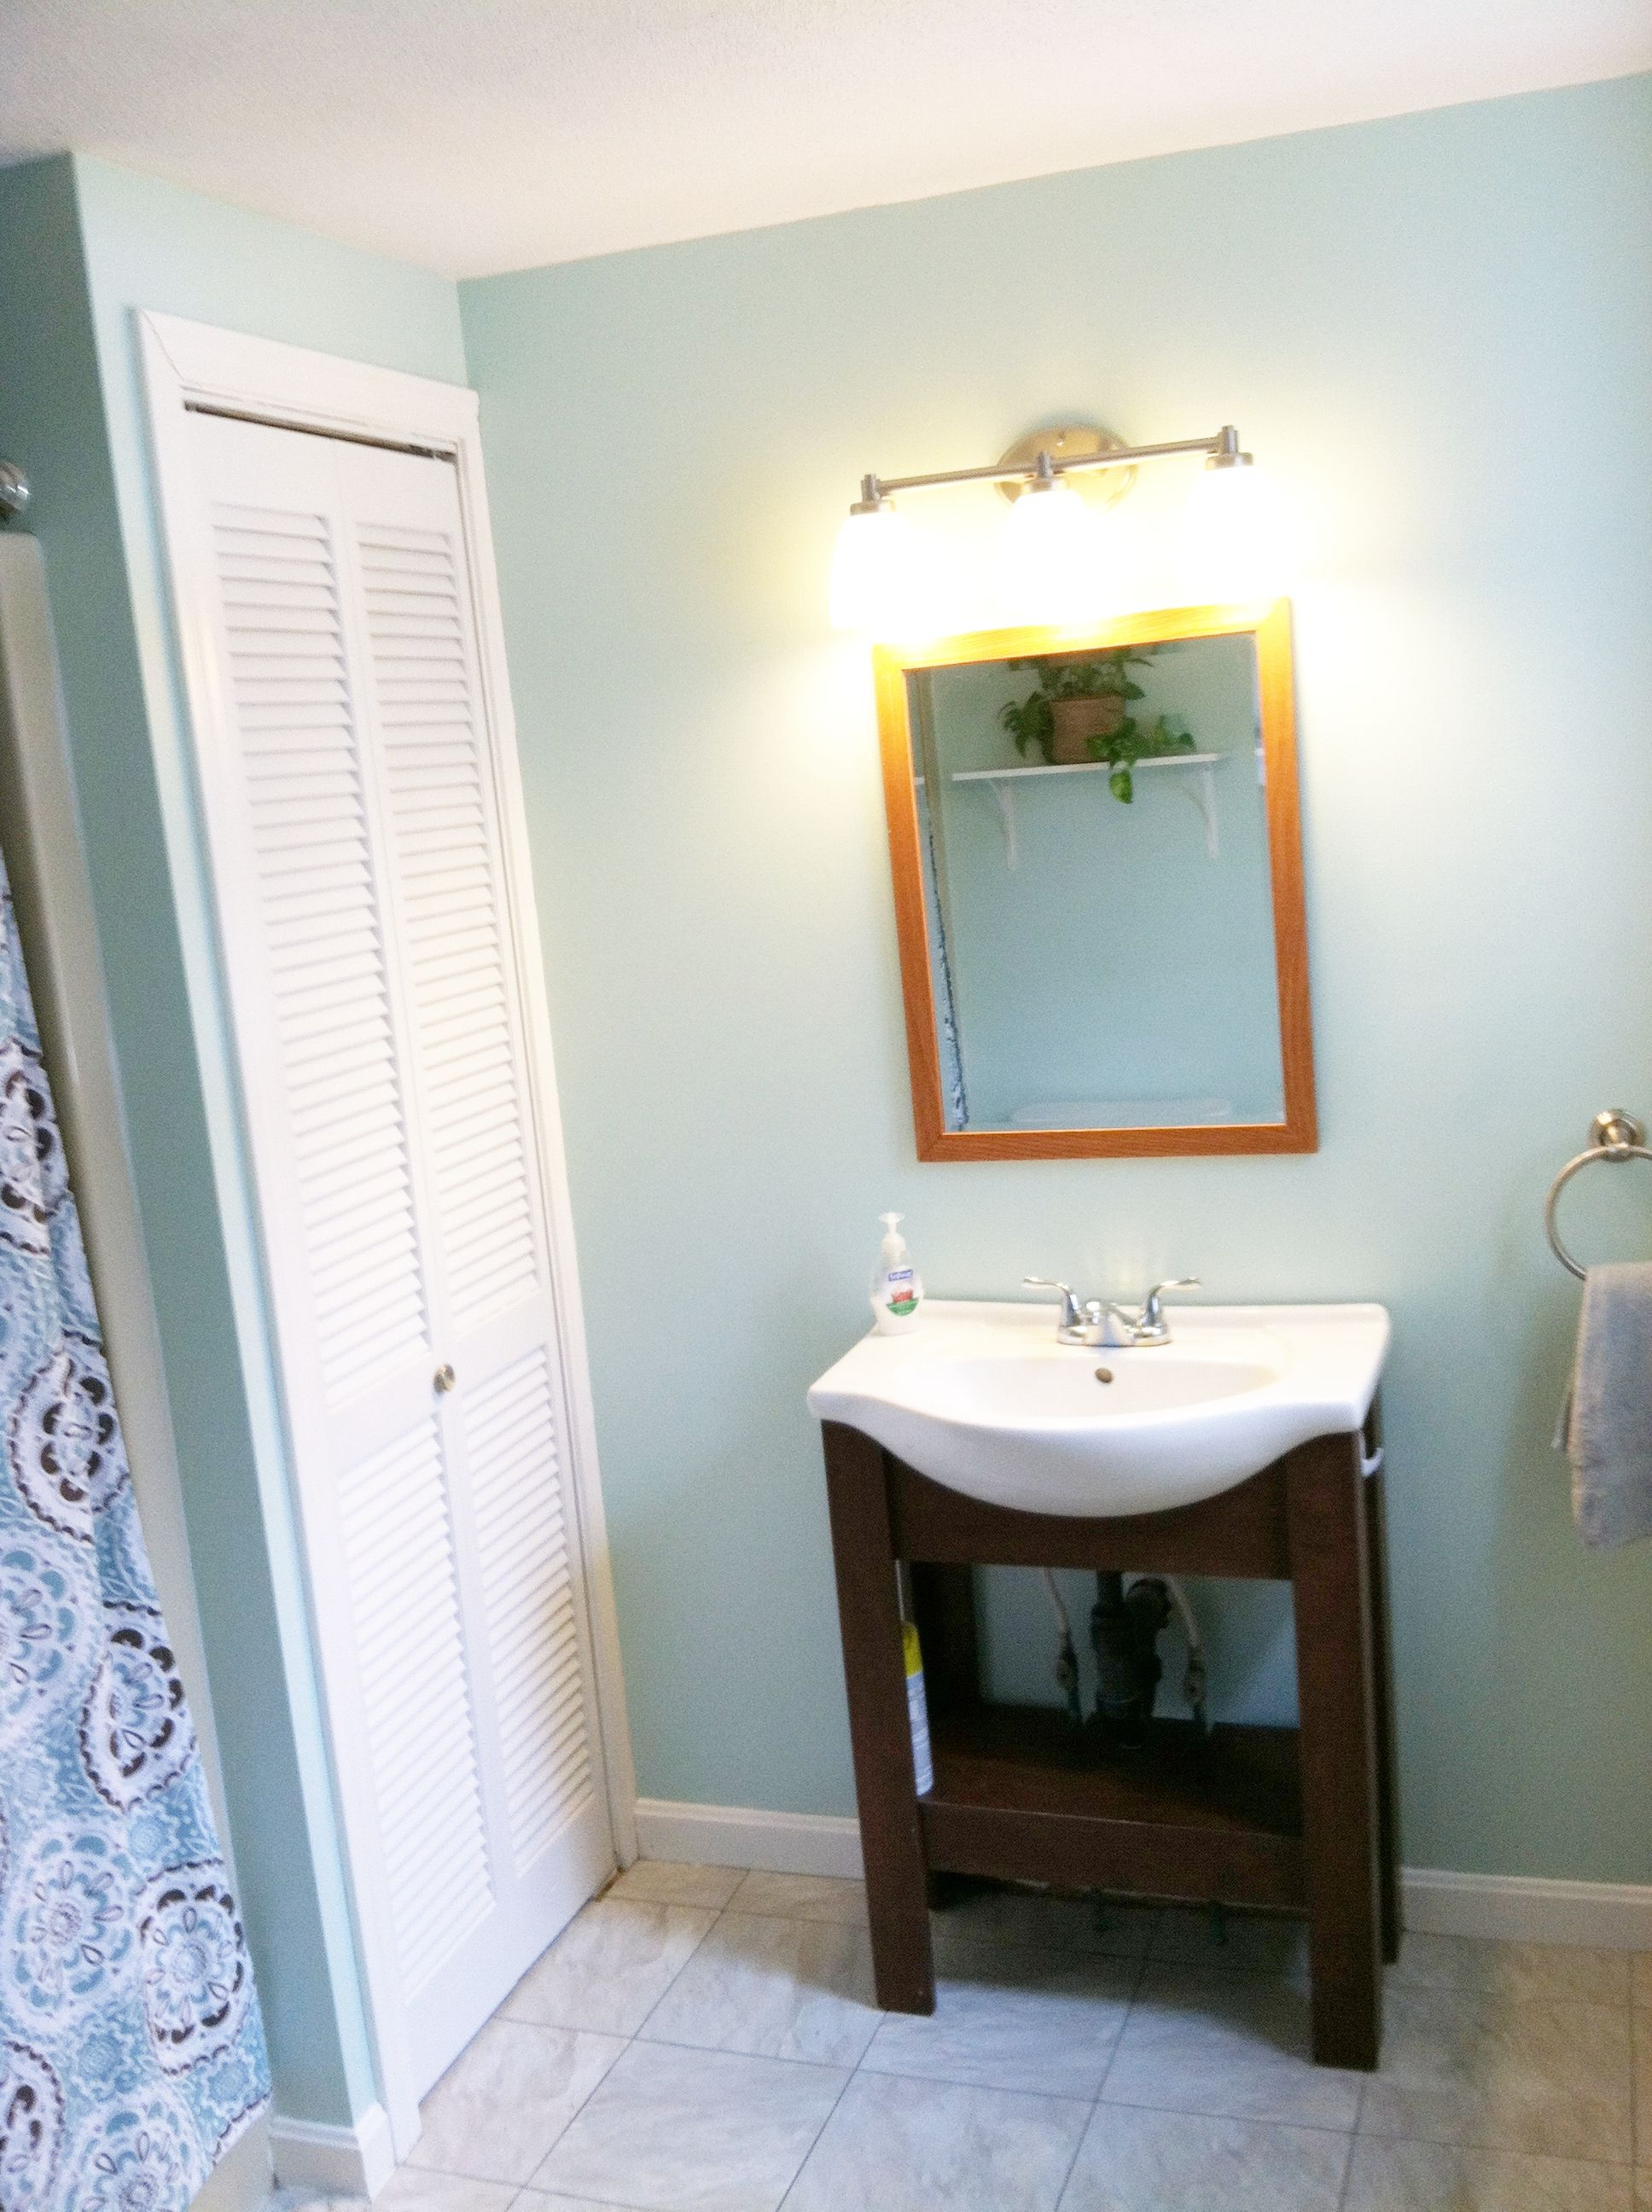 valspar bathroom paint colors bathroom design ideas valspar bathroom paint colours valspar bathroom paint price